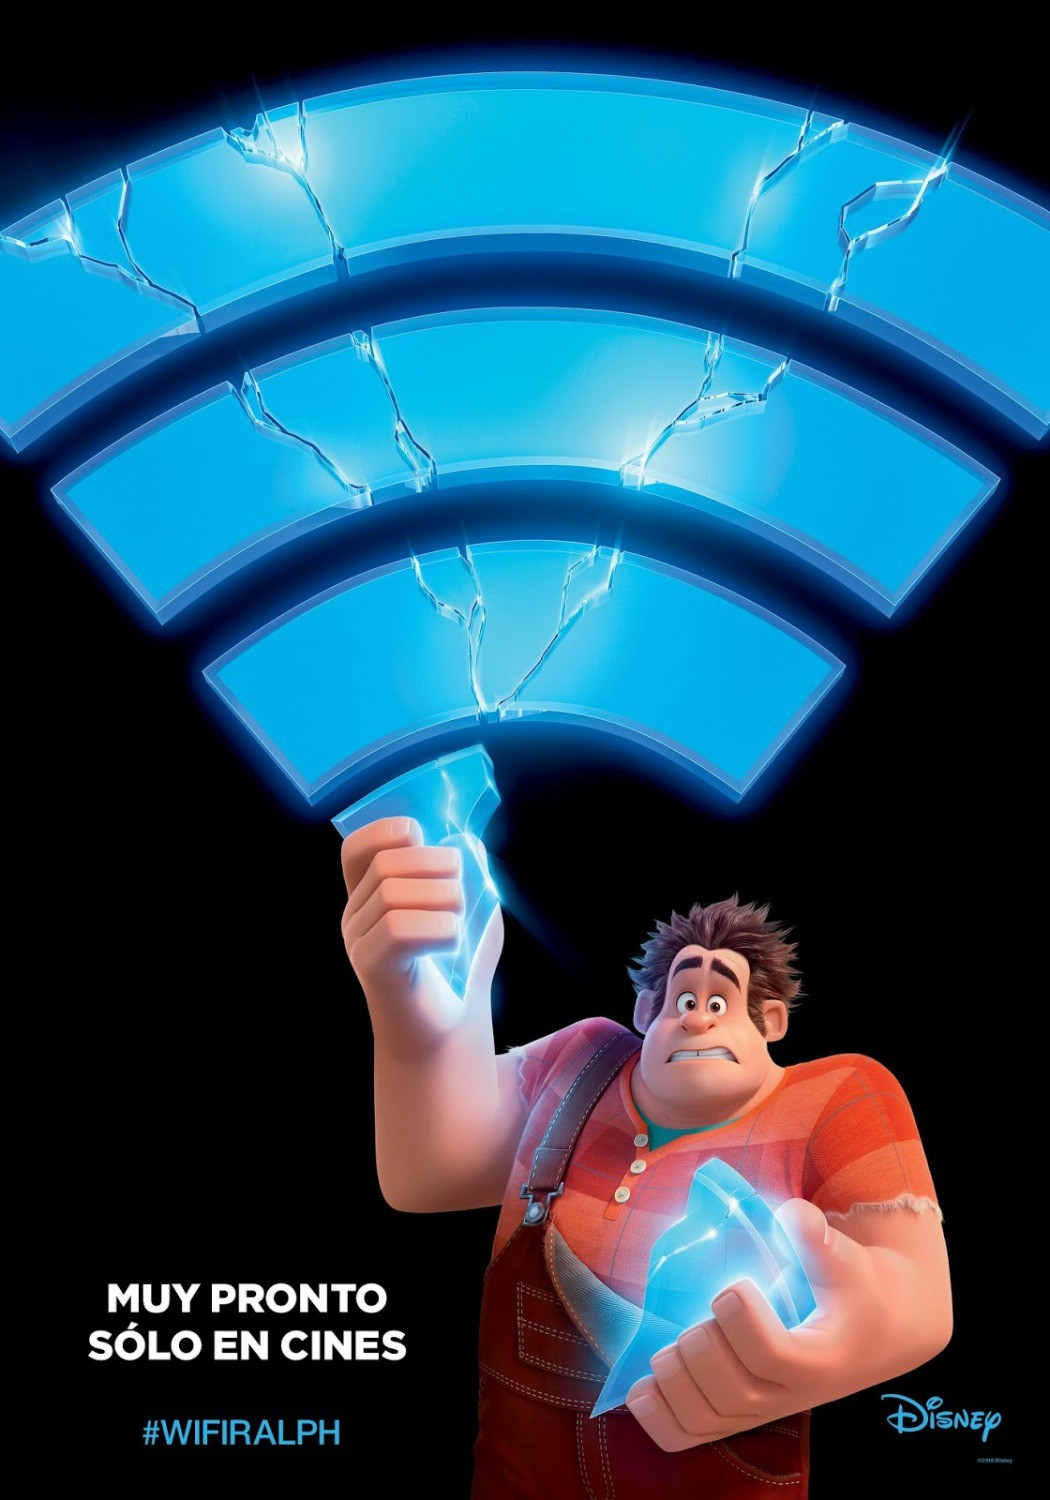 Wreck-it ralph full movie hd 1080p youtube.